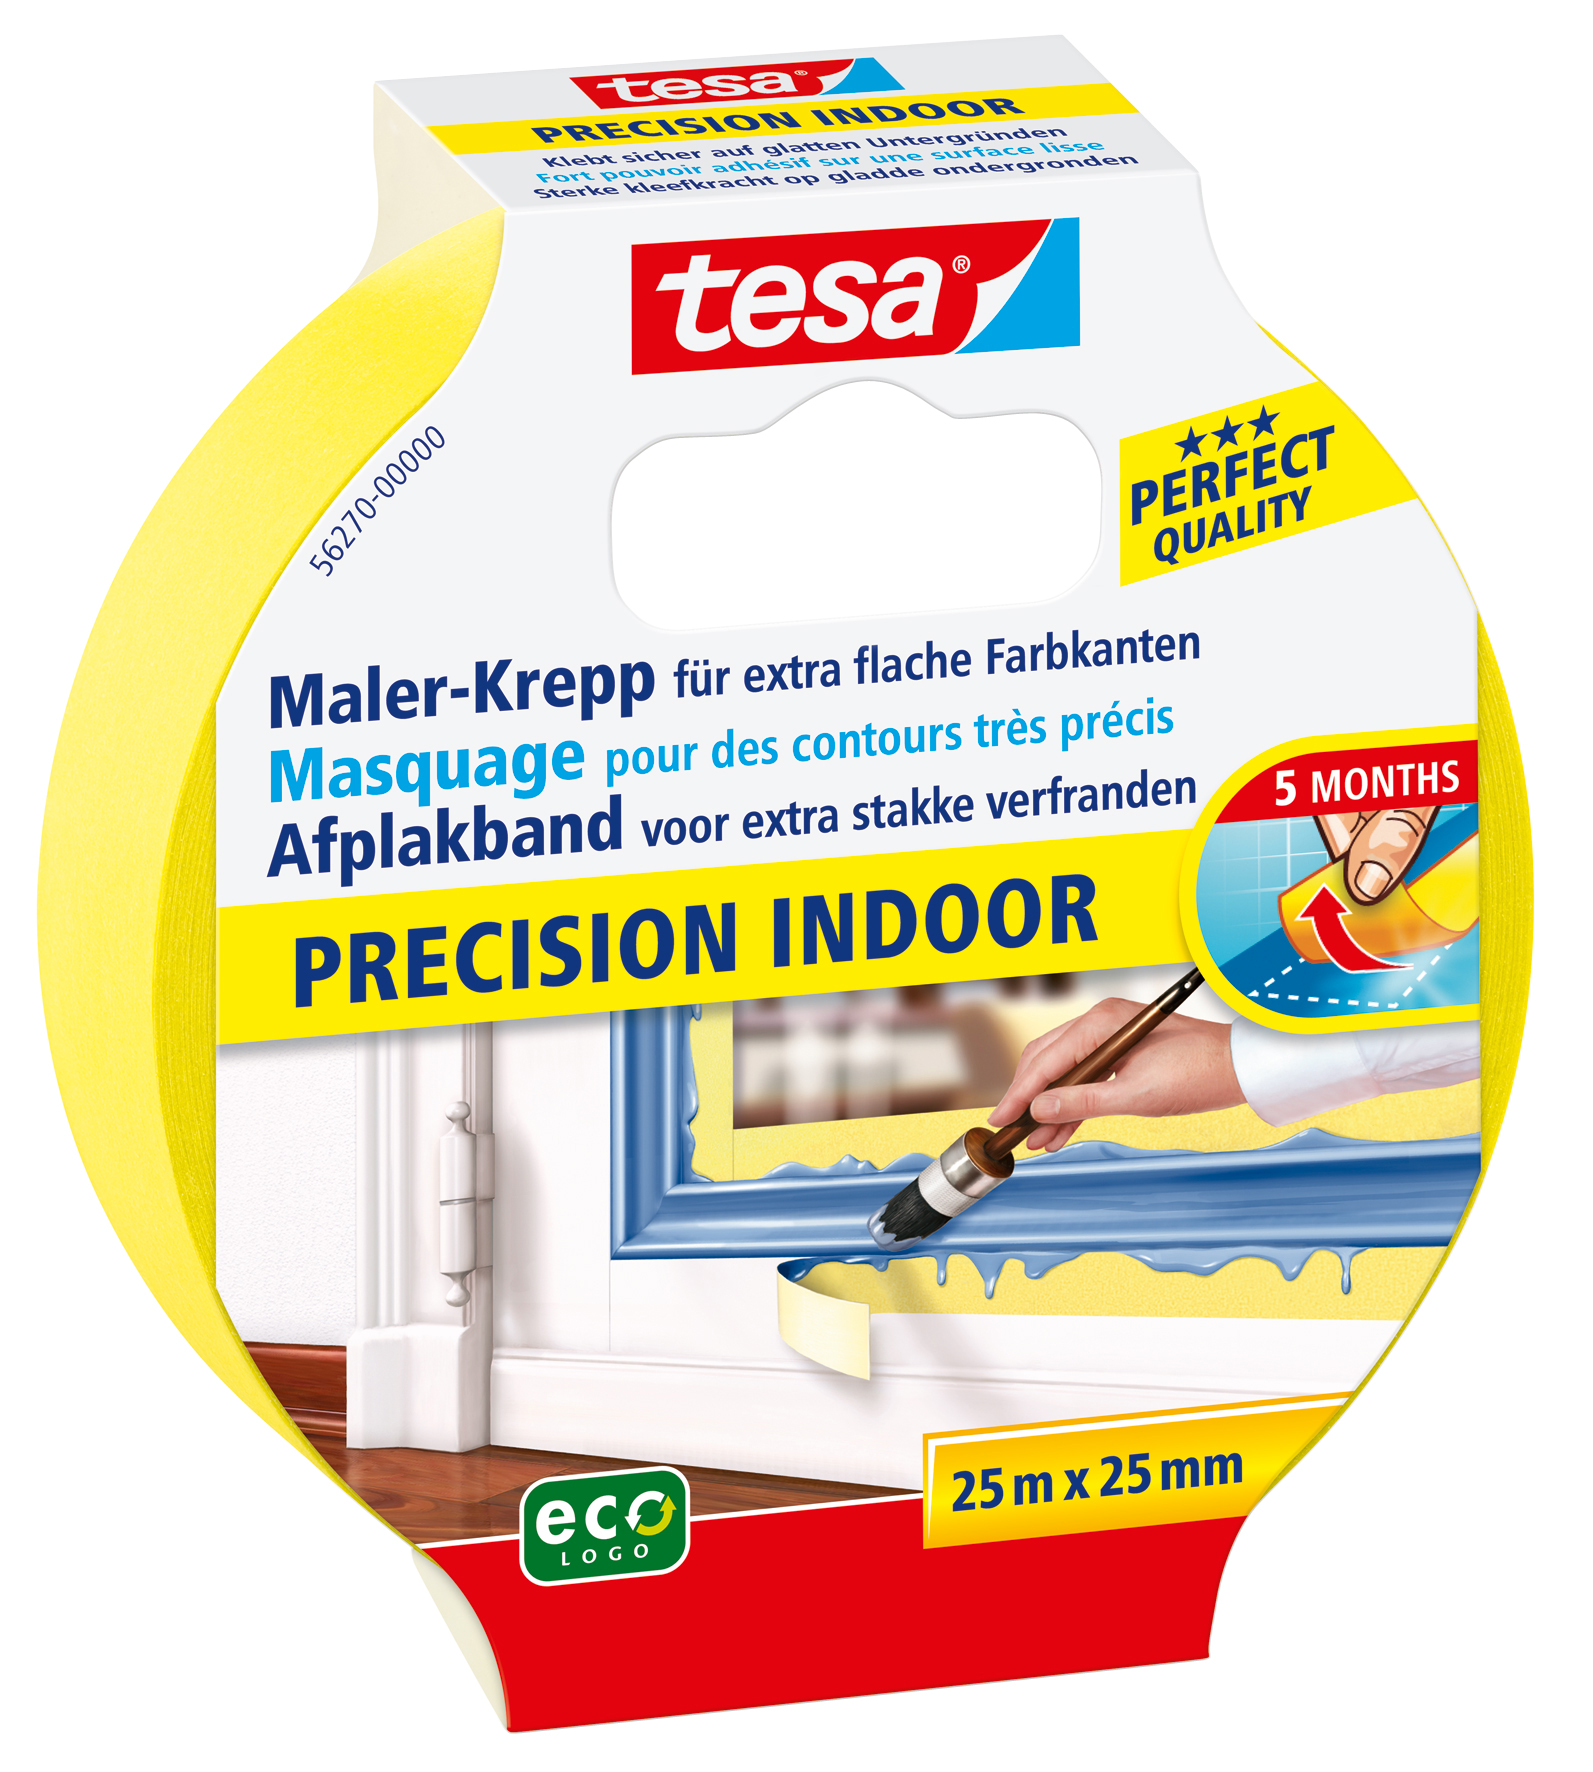 GP: 0,13 EUR/m 6 x tesa Maler-Krepp Precision Indoor 25 m x 25 mm